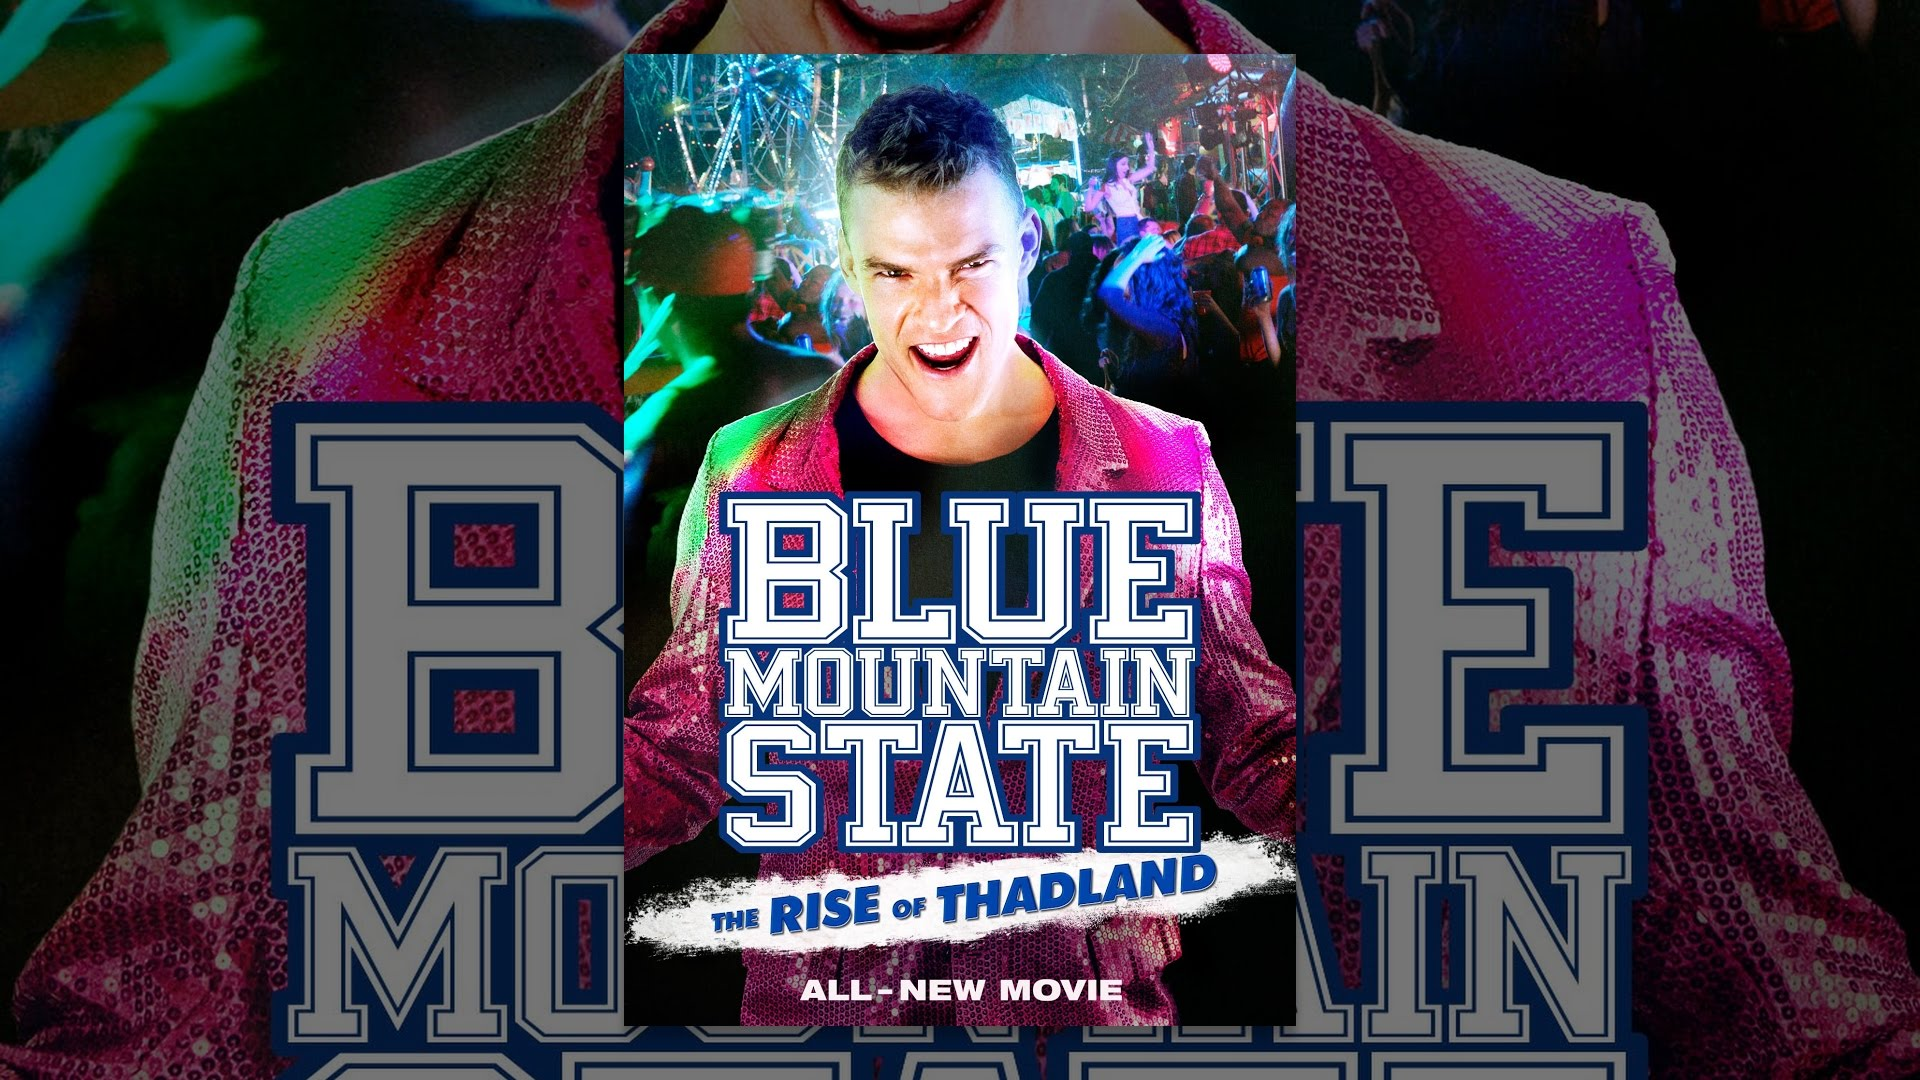 Download Blue Mountain State: The Rise Of Thadland